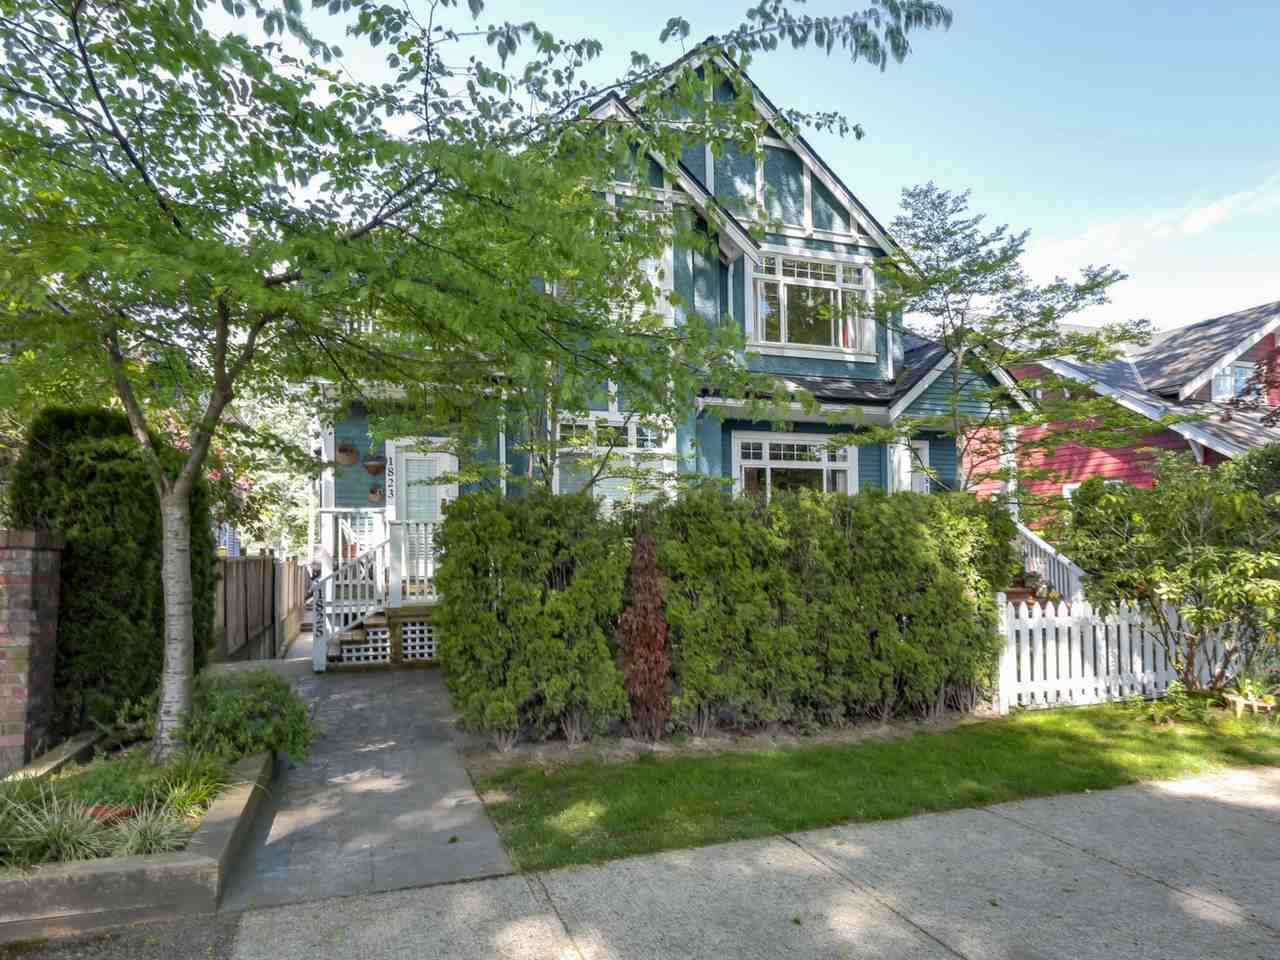 Main Photo: 1825 W 11TH Avenue in Vancouver: Kitsilano Townhouse for sale (Vancouver West)  : MLS®# R2061107